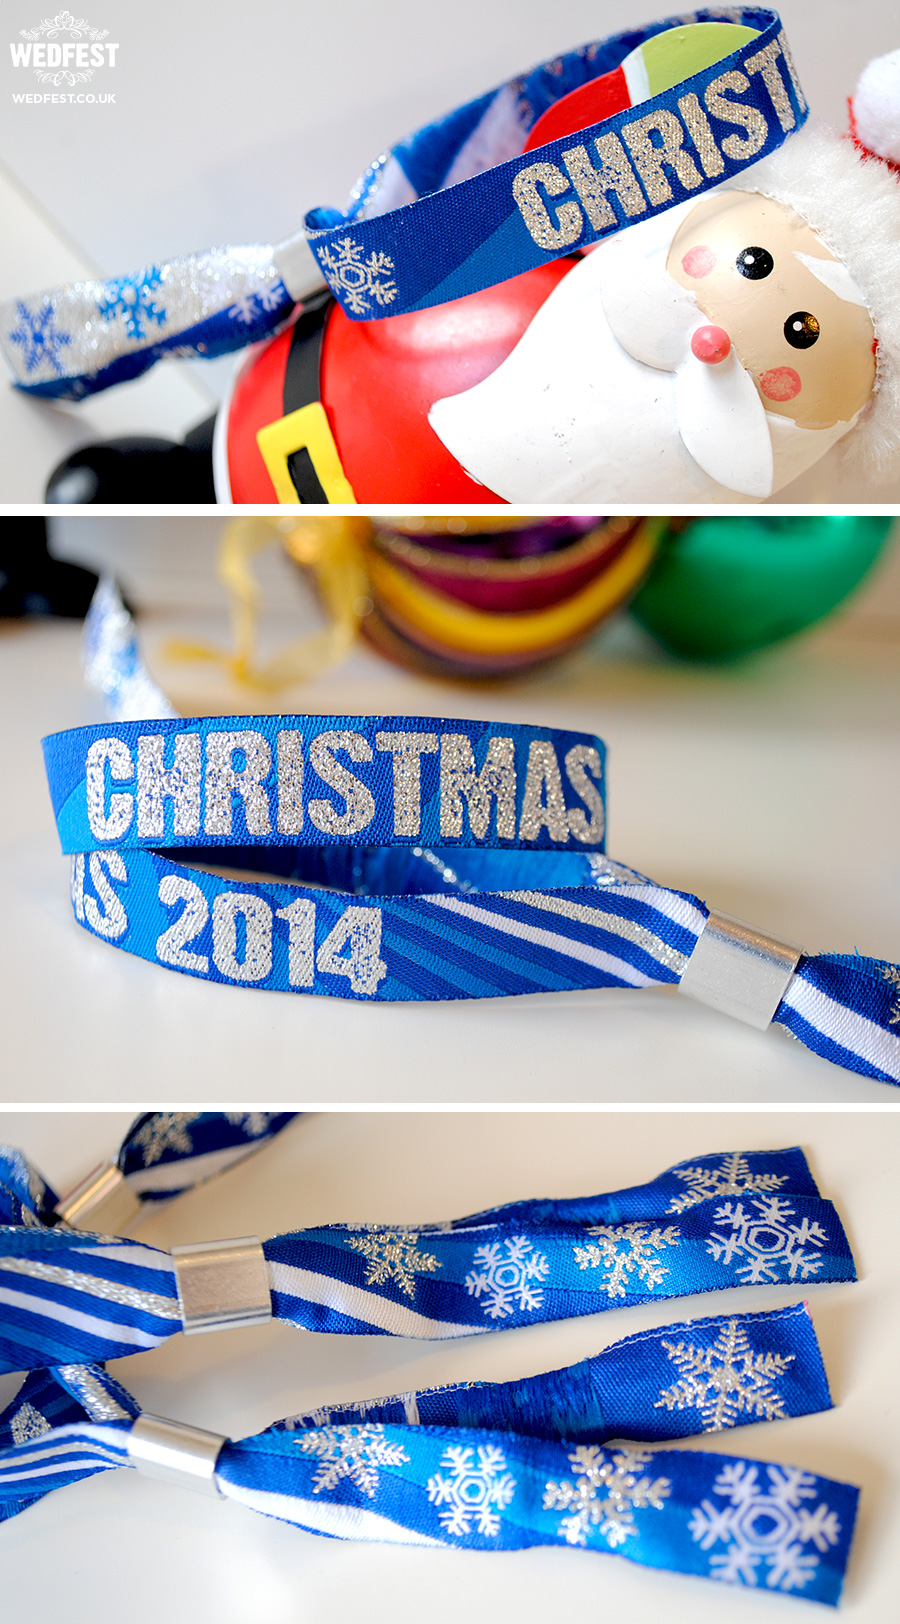 corporate christmas party fabric wristbands